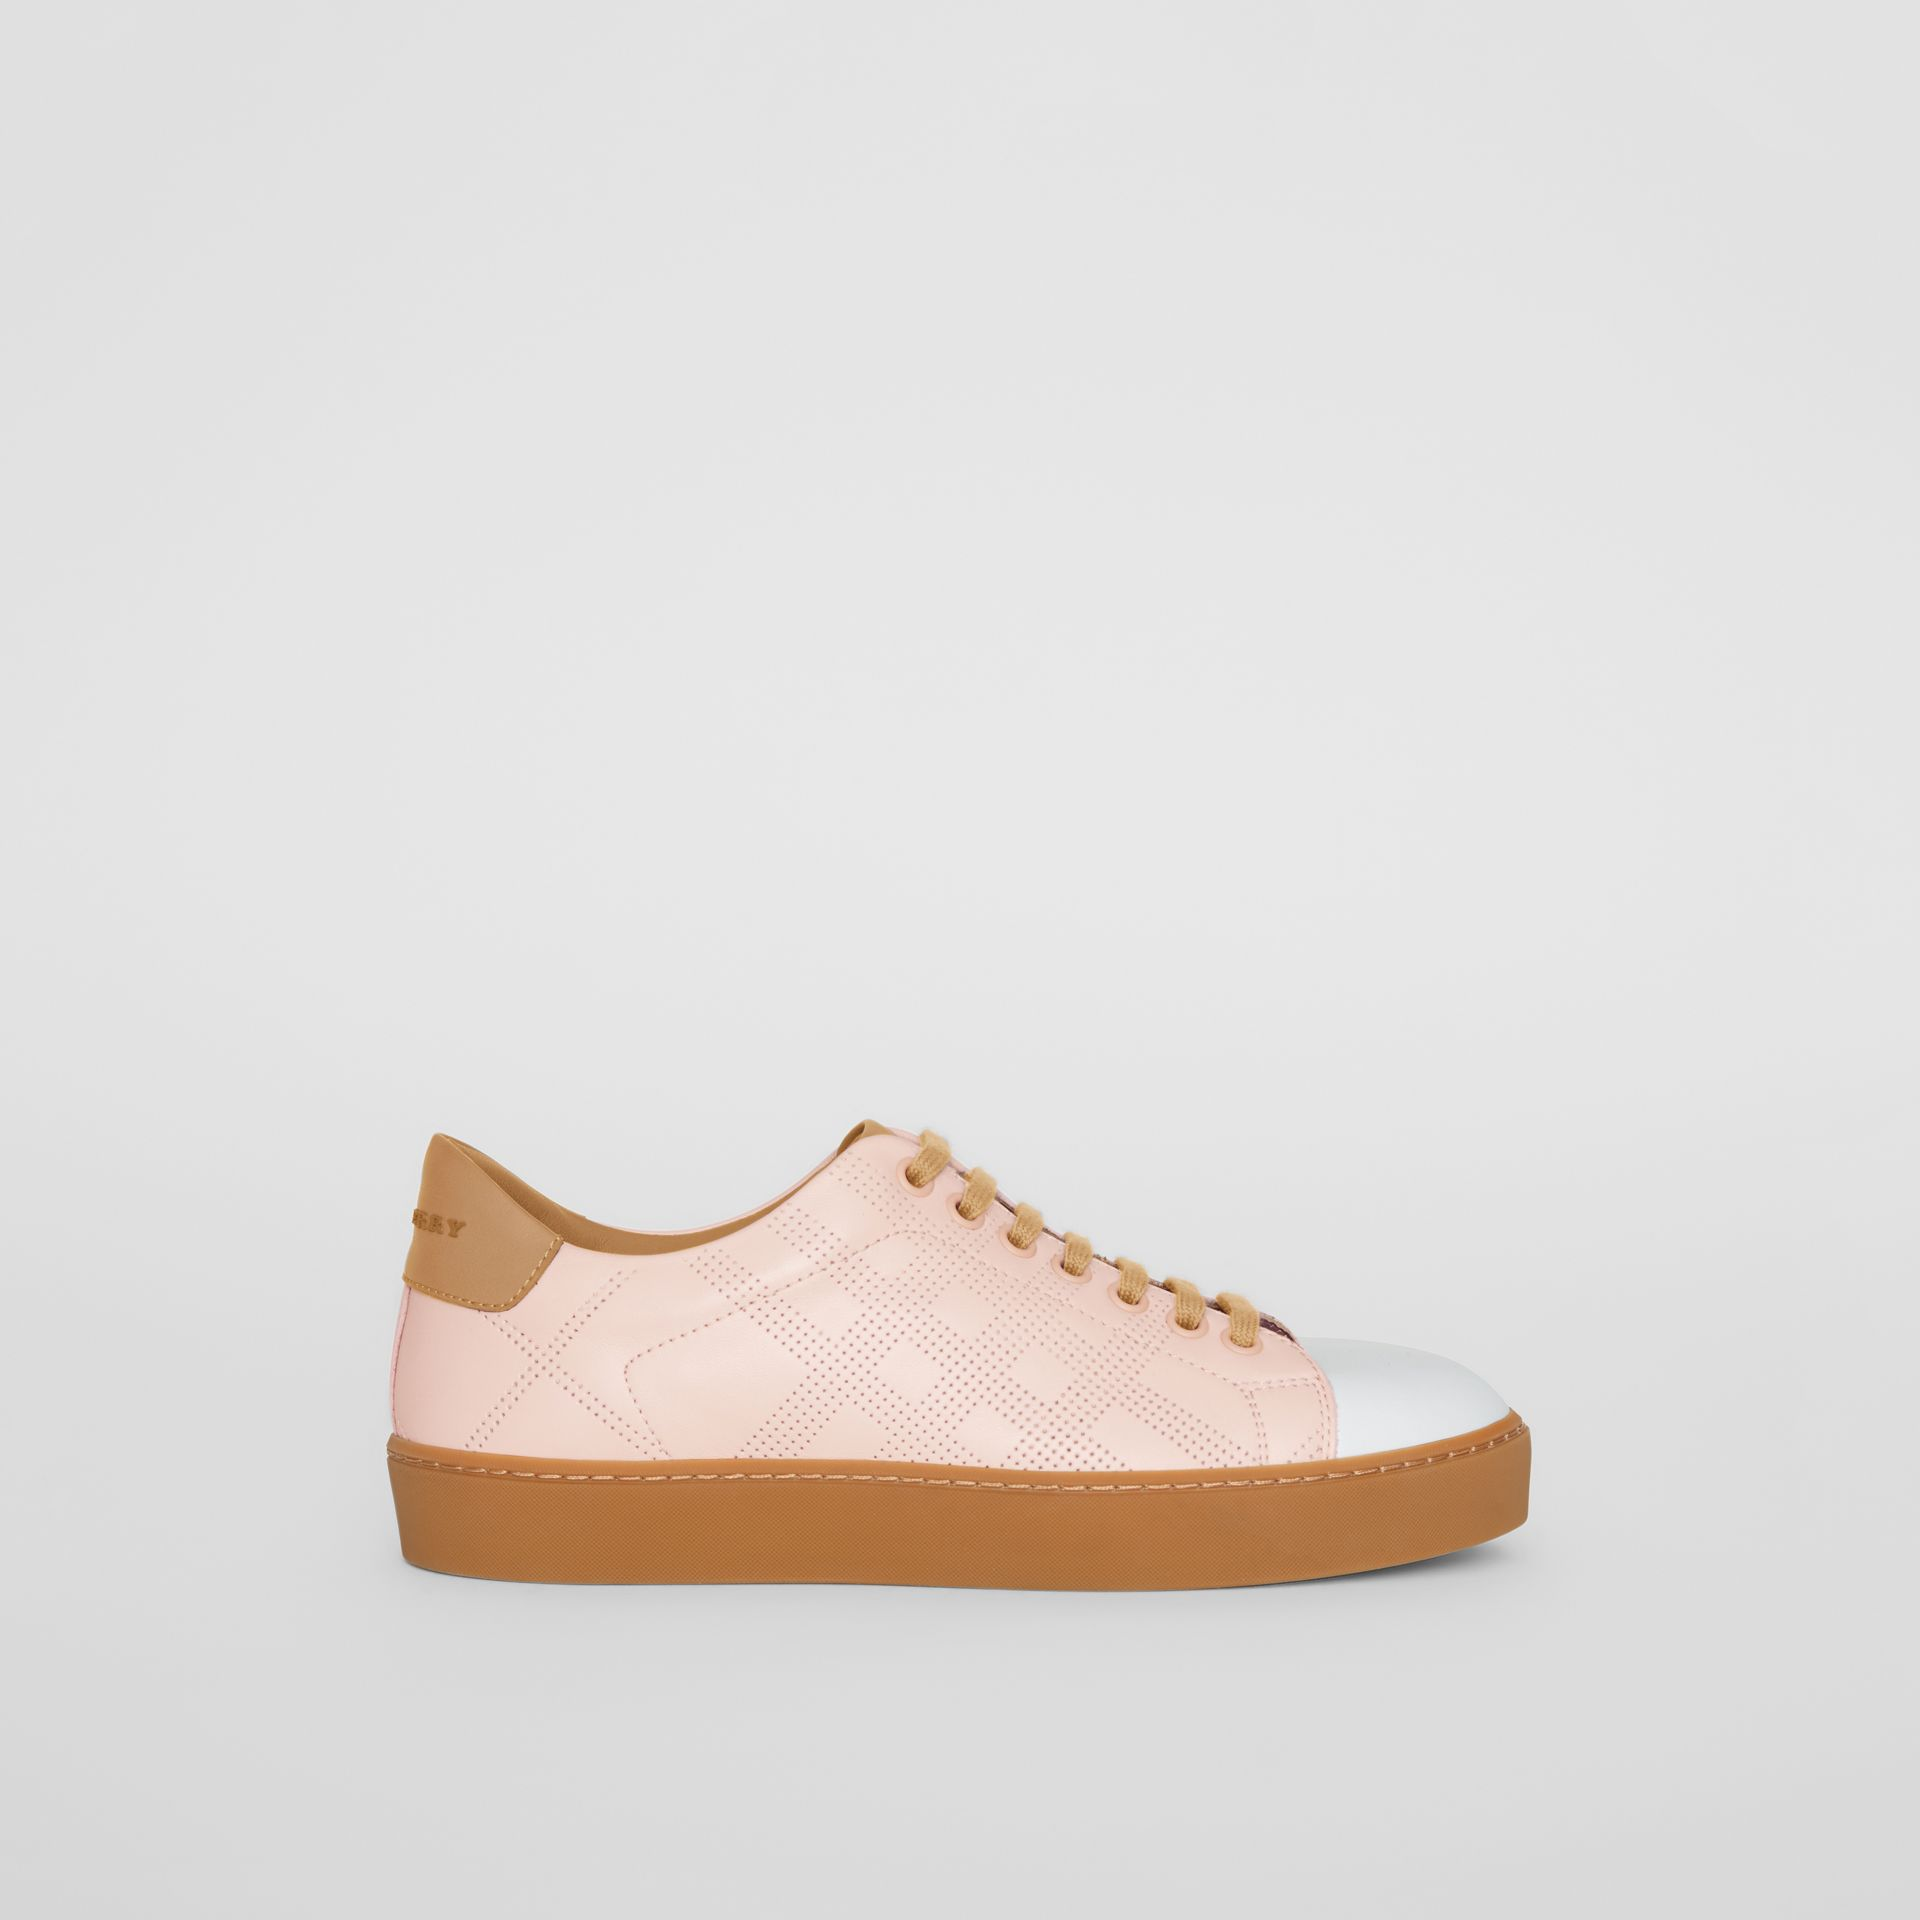 Tri-tone Perforated Check Leather Sneakers in Pale Pink - Women | Burberry - gallery image 5